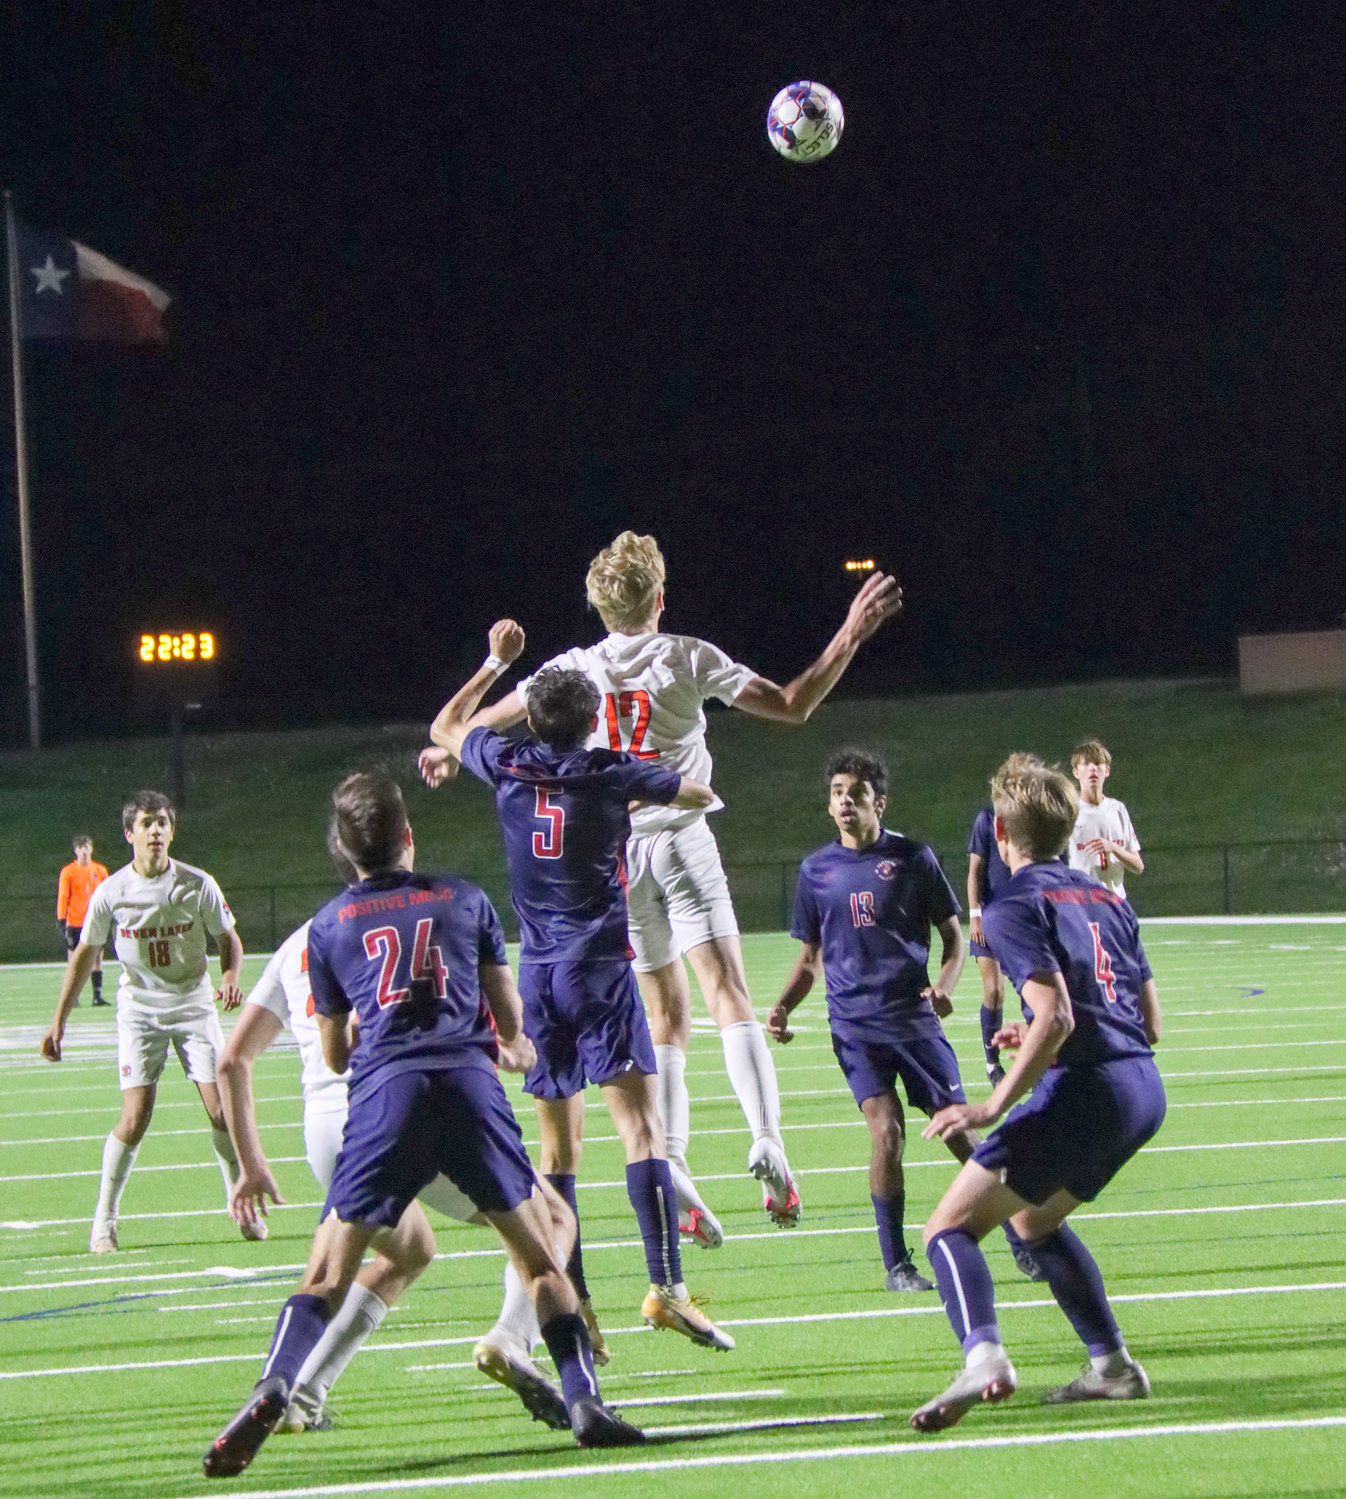 Tompkins defenders Ian Aumagher (24), Diego Castellano (5), Ojas Shandilya (13) and Luke Andrepont (4) swarm Seven Lakes sophomore midfielder Hunter Merritt (12) during their Class 6A regional quarterfinal game Friday, April 2, at Rhodes Stadium.